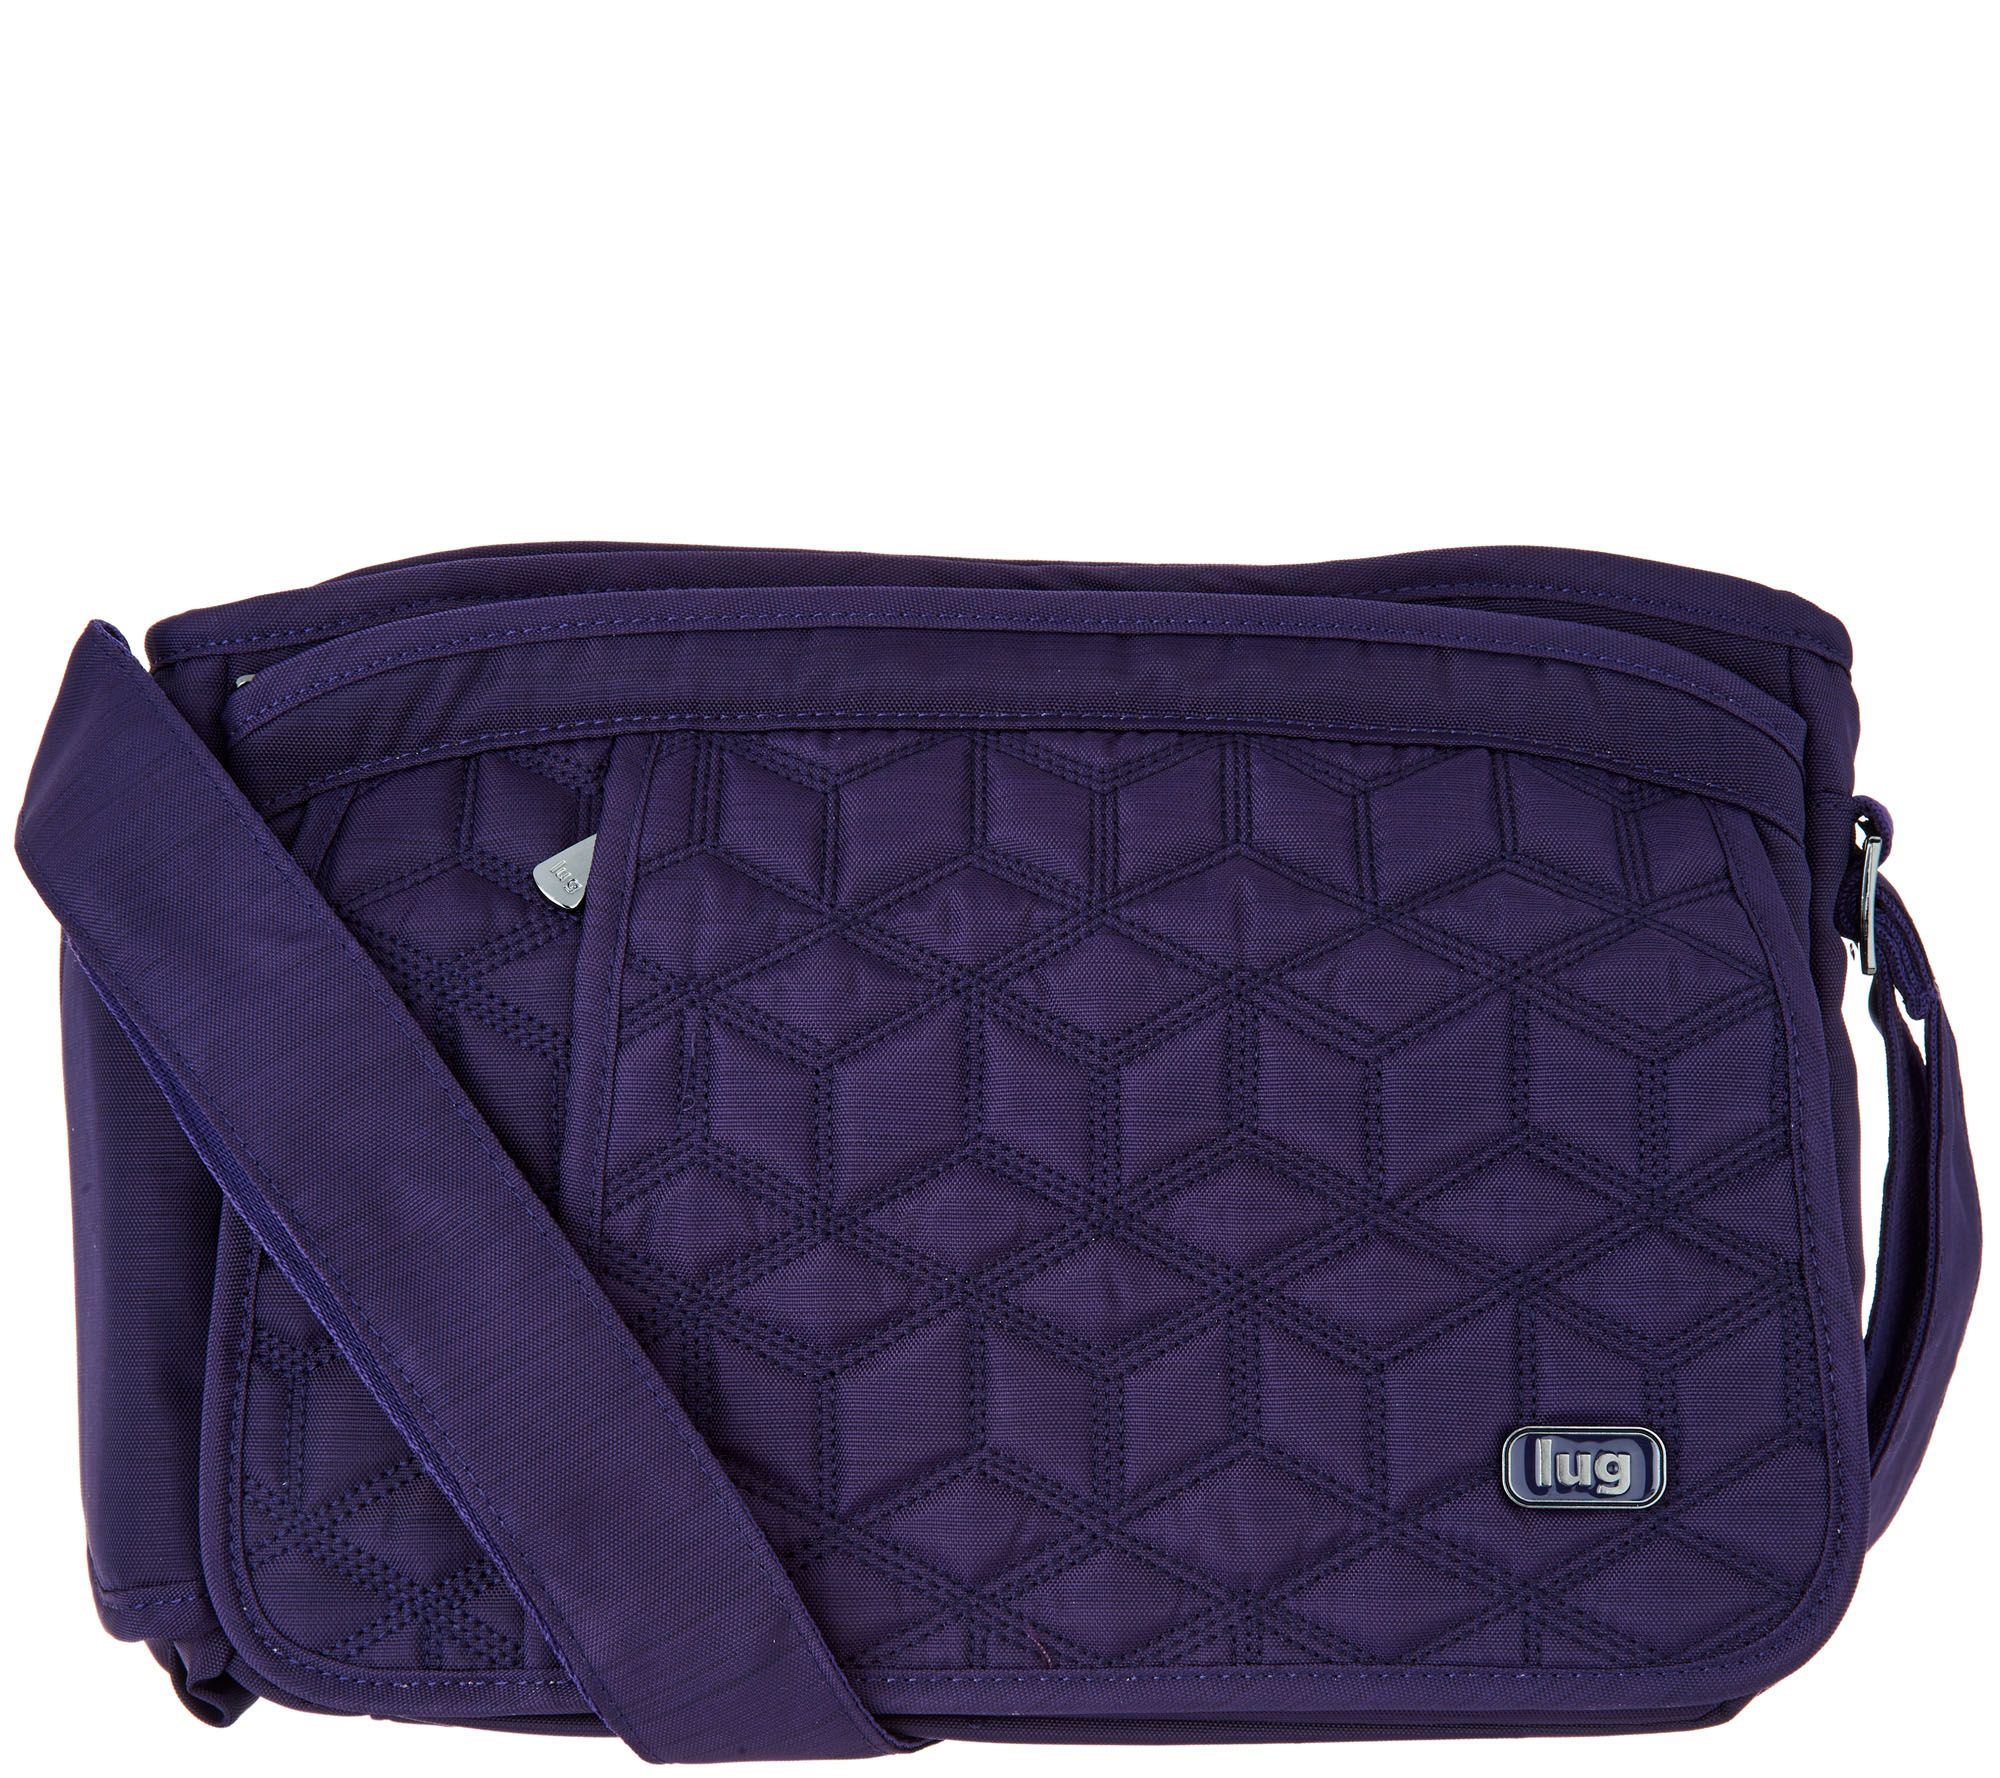 Lug Quilted Flap Crossbody Bag - Wings - Page 1 — QVC.com a58cb4a48d